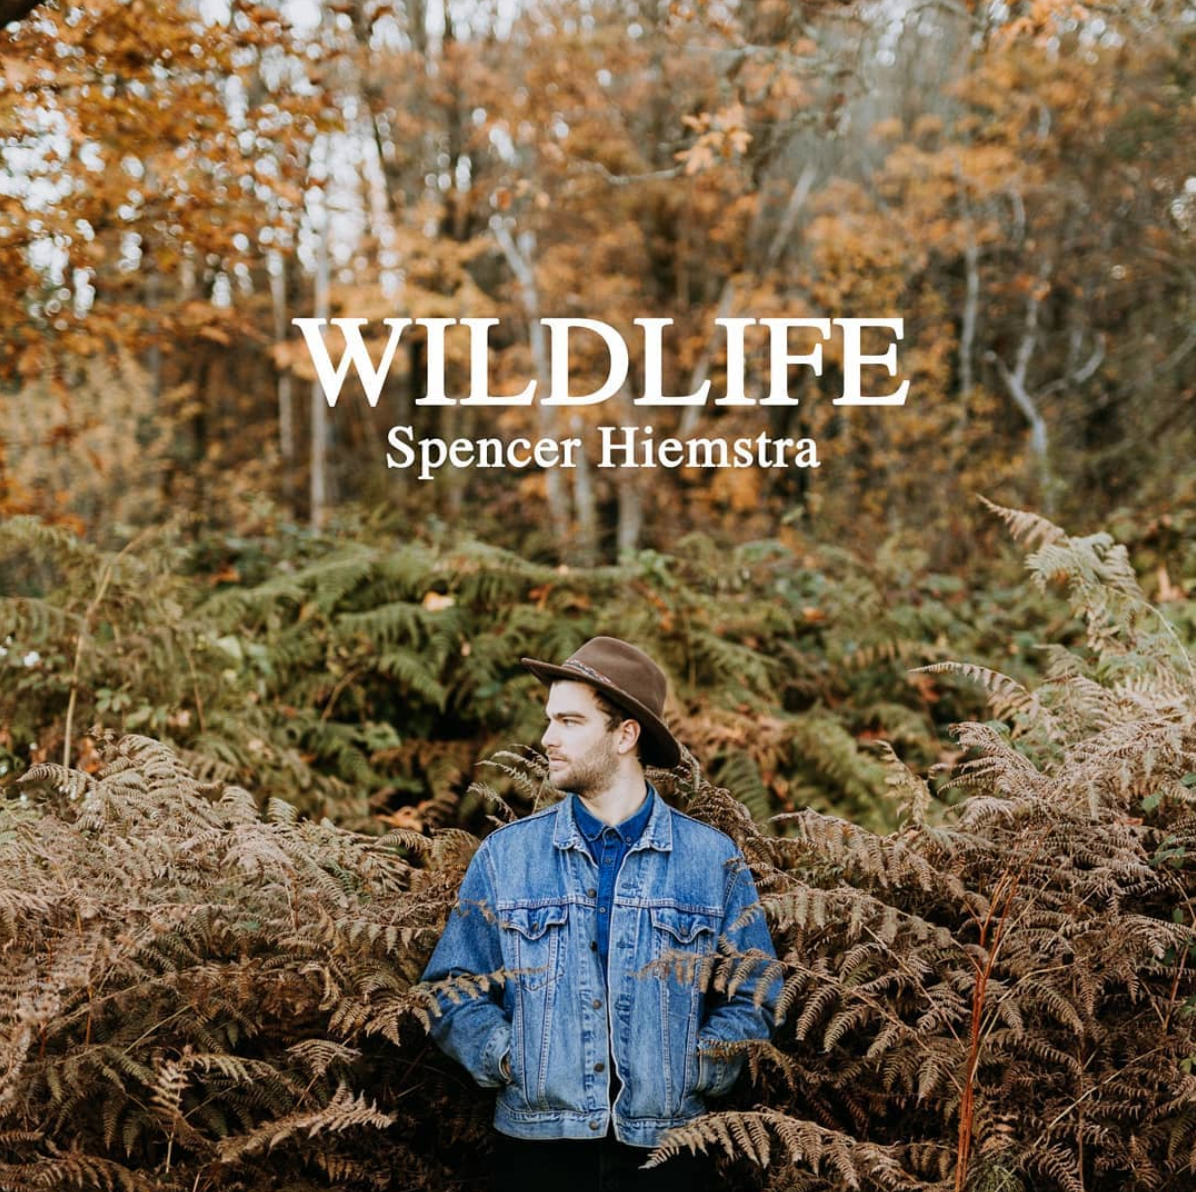 Album cover for Spencer Hiemstra's album Wildlife, pictures Hiemstra standing in a forest with brown and green ferns and orange-leaved trees.